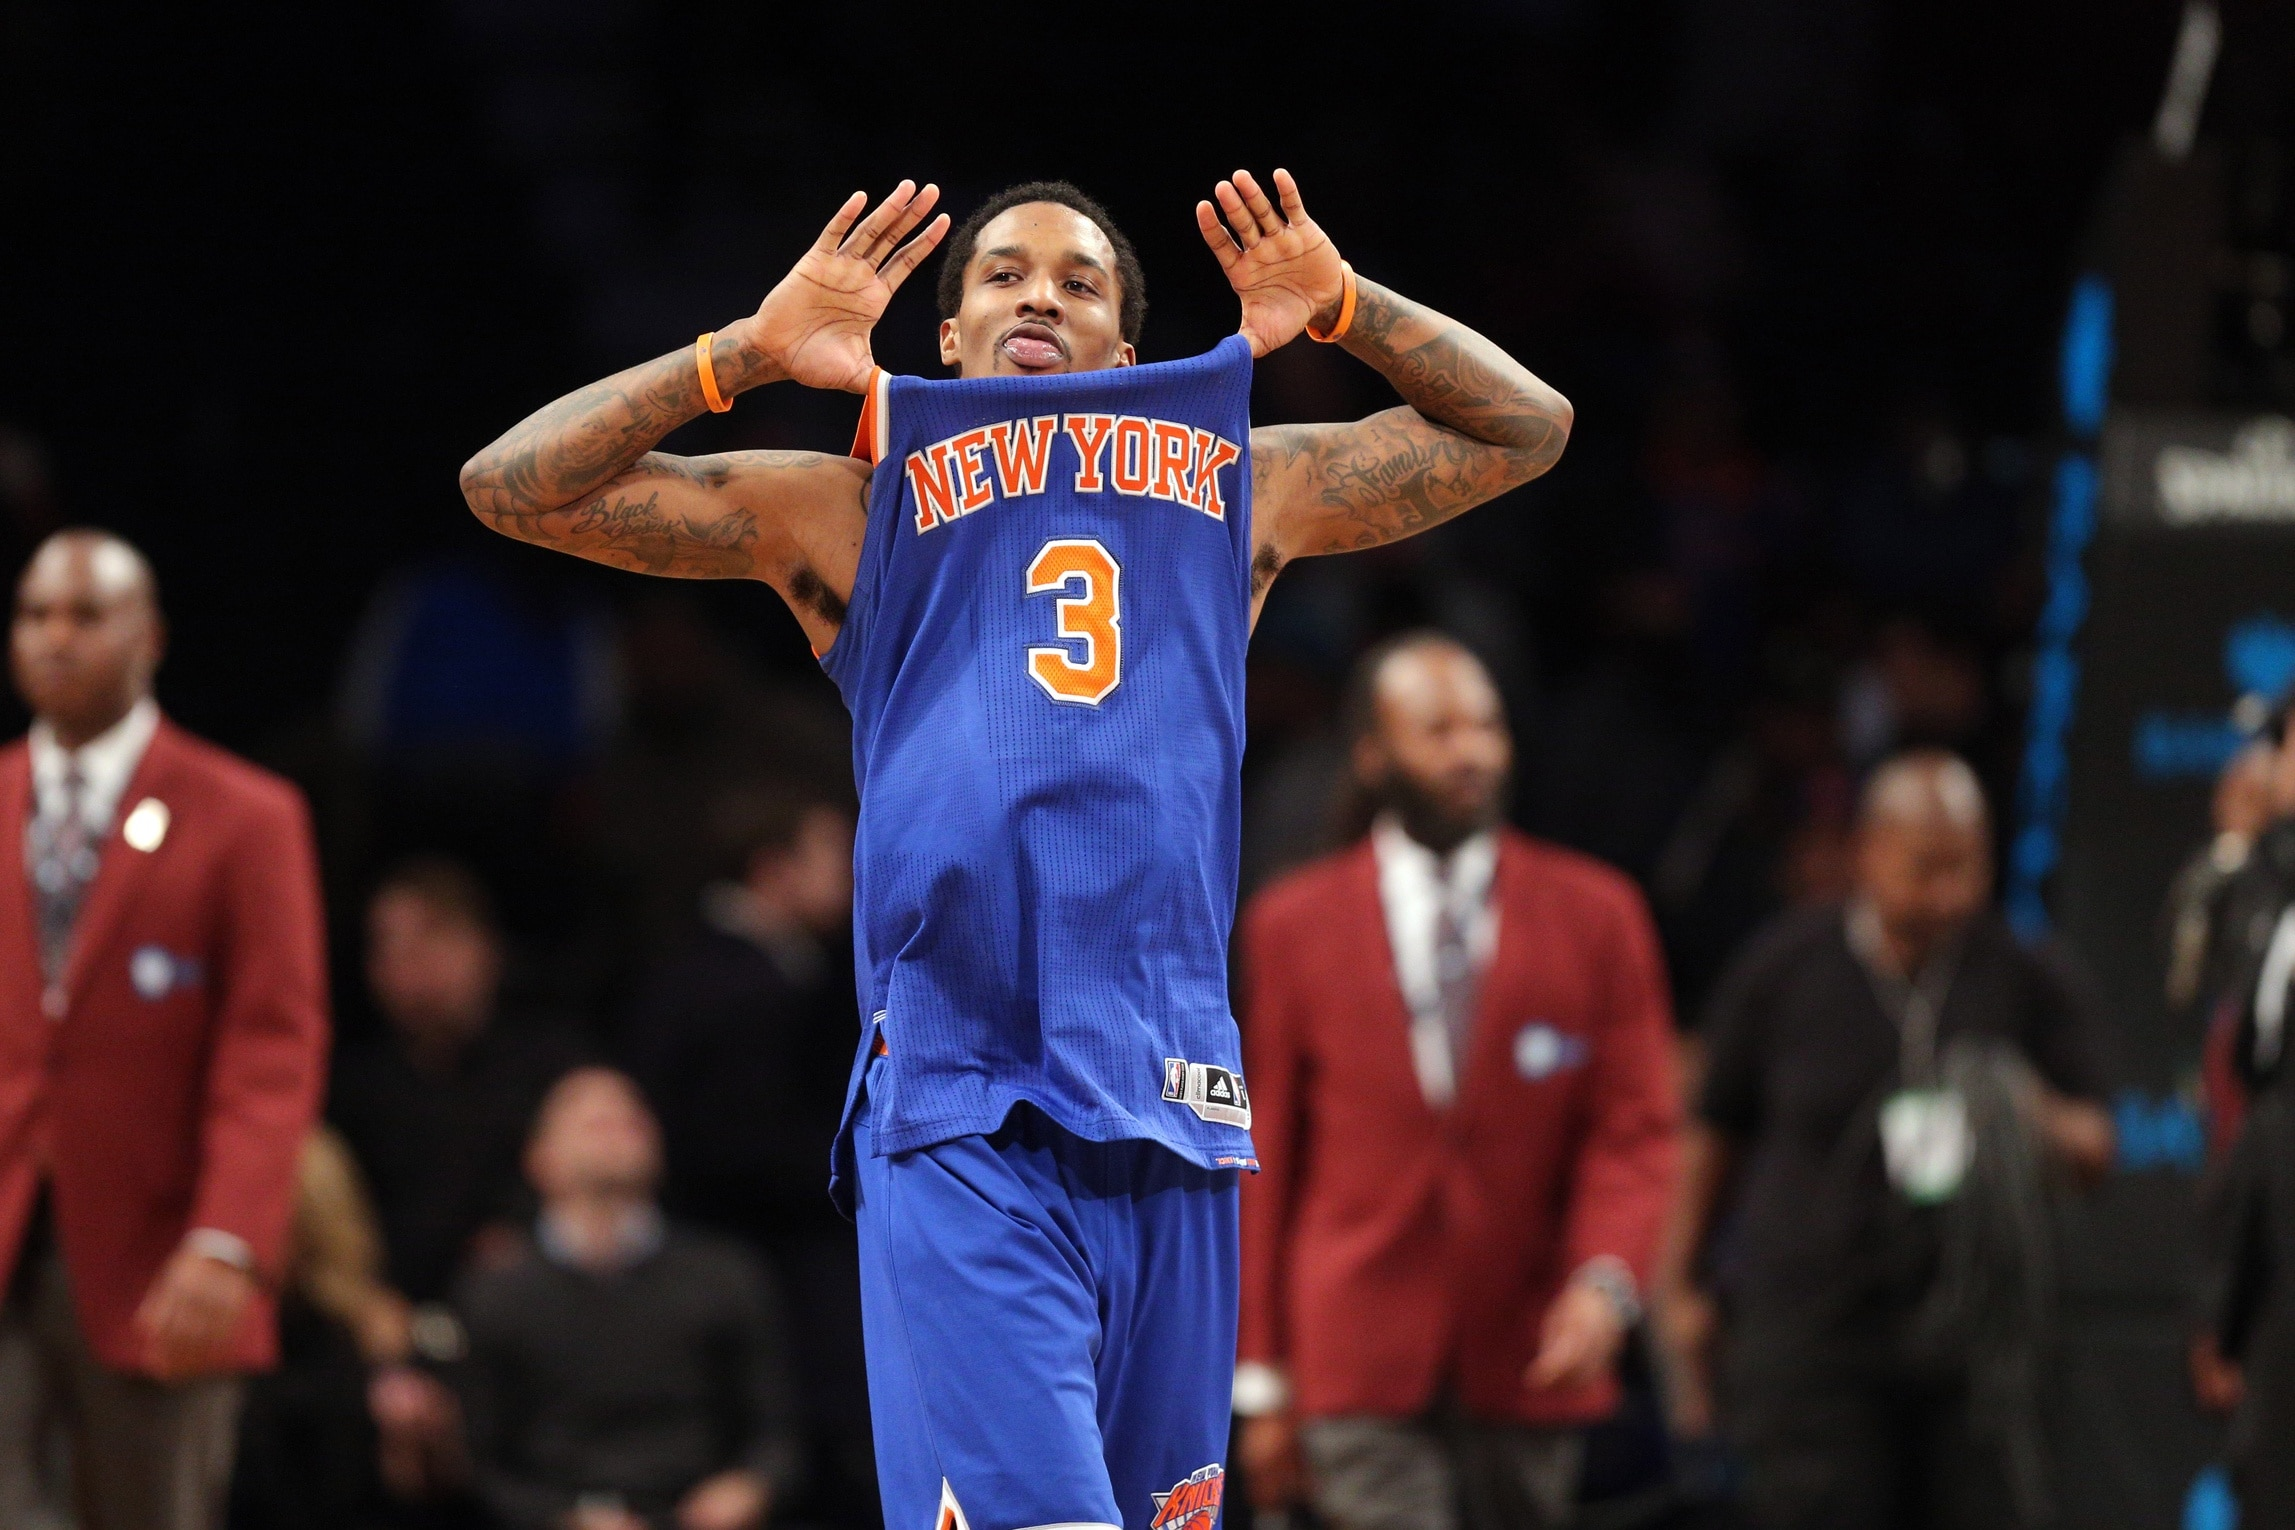 Caption: Feb 1, 2017; Brooklyn, NY, USA; New York Knicks point guard Brandon Jennings (3) reacts after defeating the Brooklyn Nets at Barclays Center. Mandatory Credit: Brad Penner-USA TODAY Sports